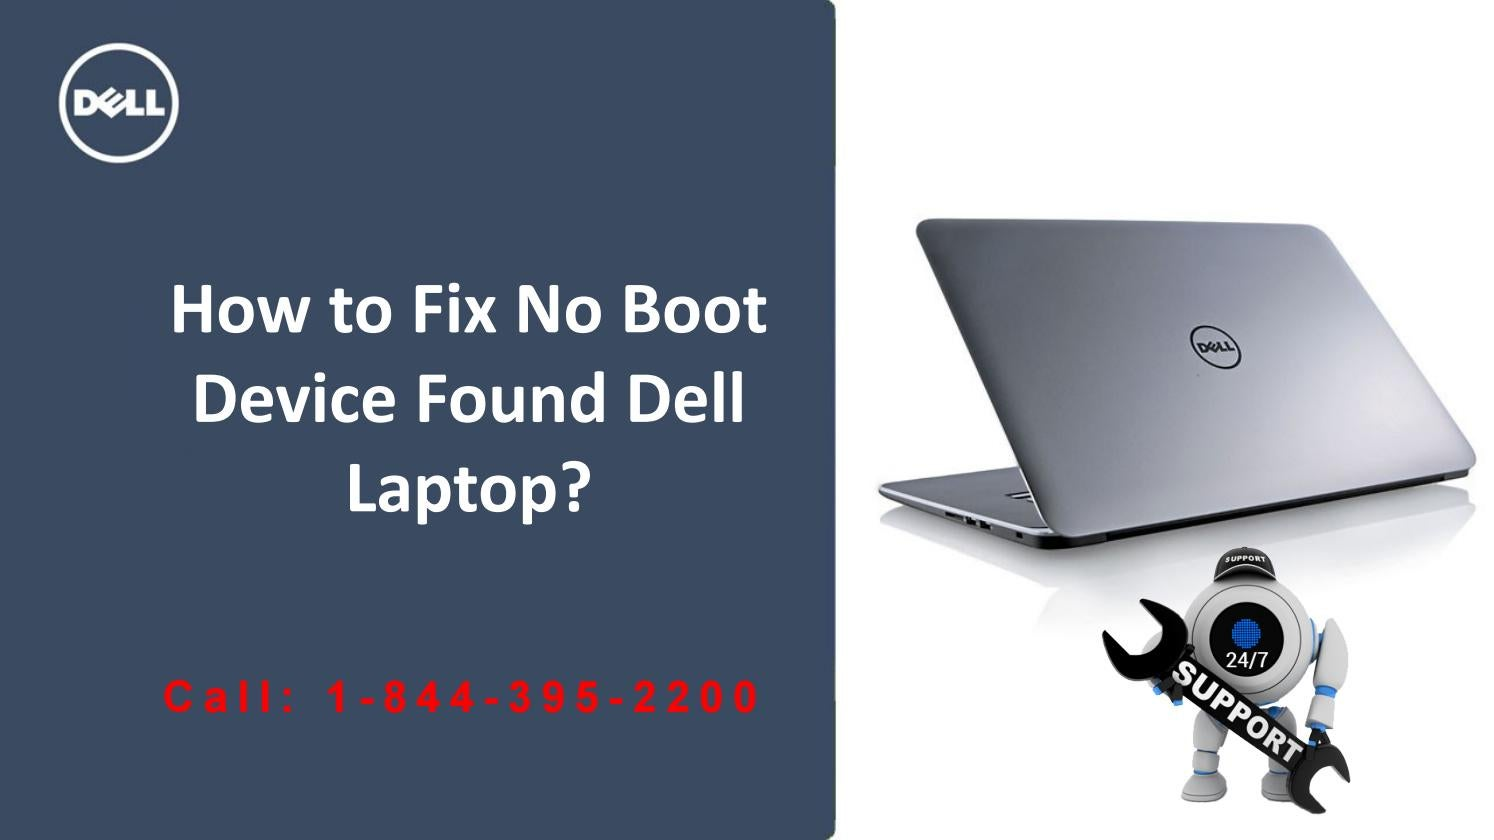 Call 1-844-395-2200 to Fix No Boot Device Found Dell Laptop